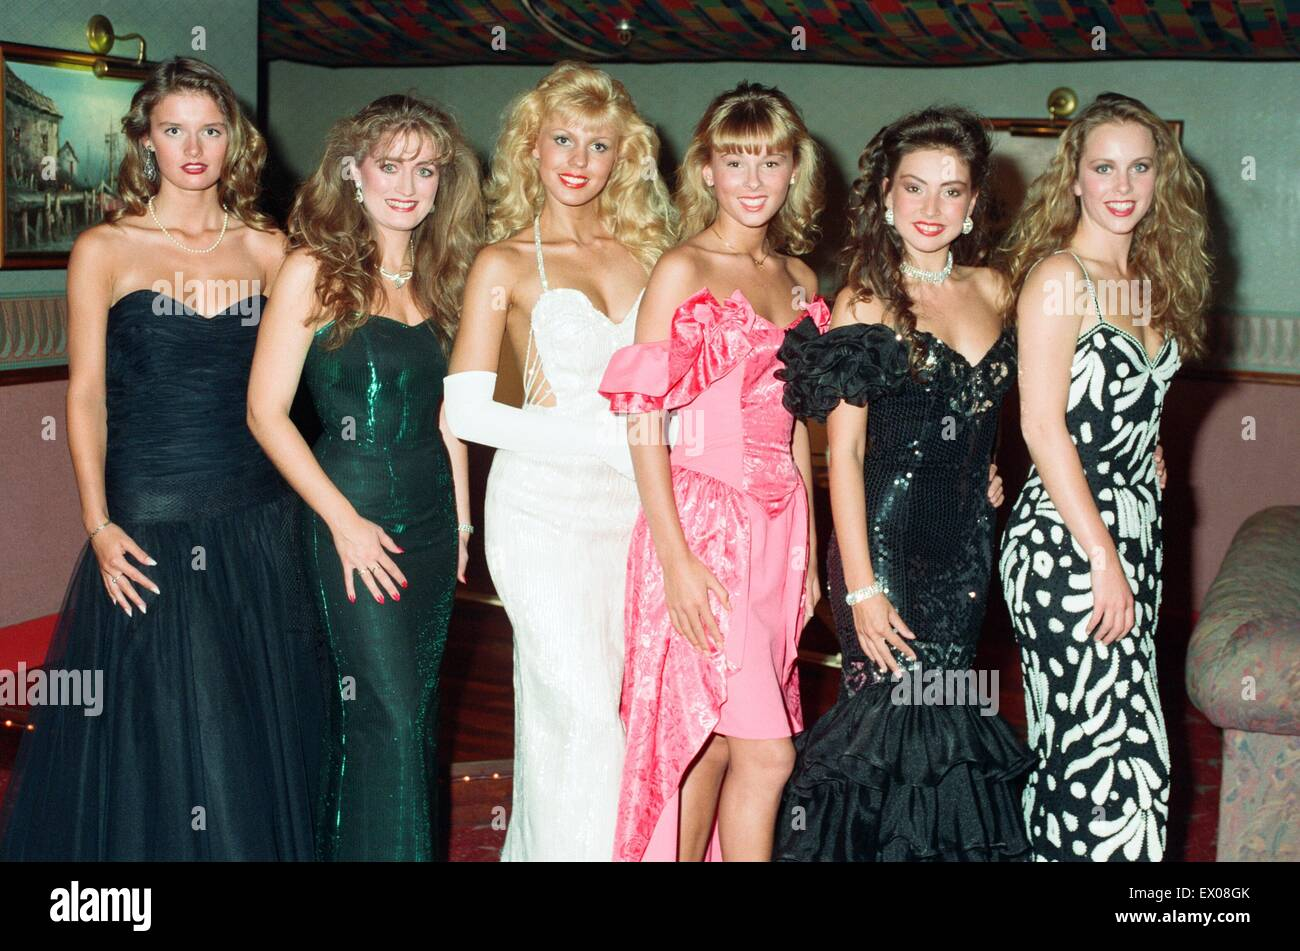 The Miss UK heats held at The Dome Nightclub in Birmingham. The winner goes through to represent Birmingham in the - Stock Image